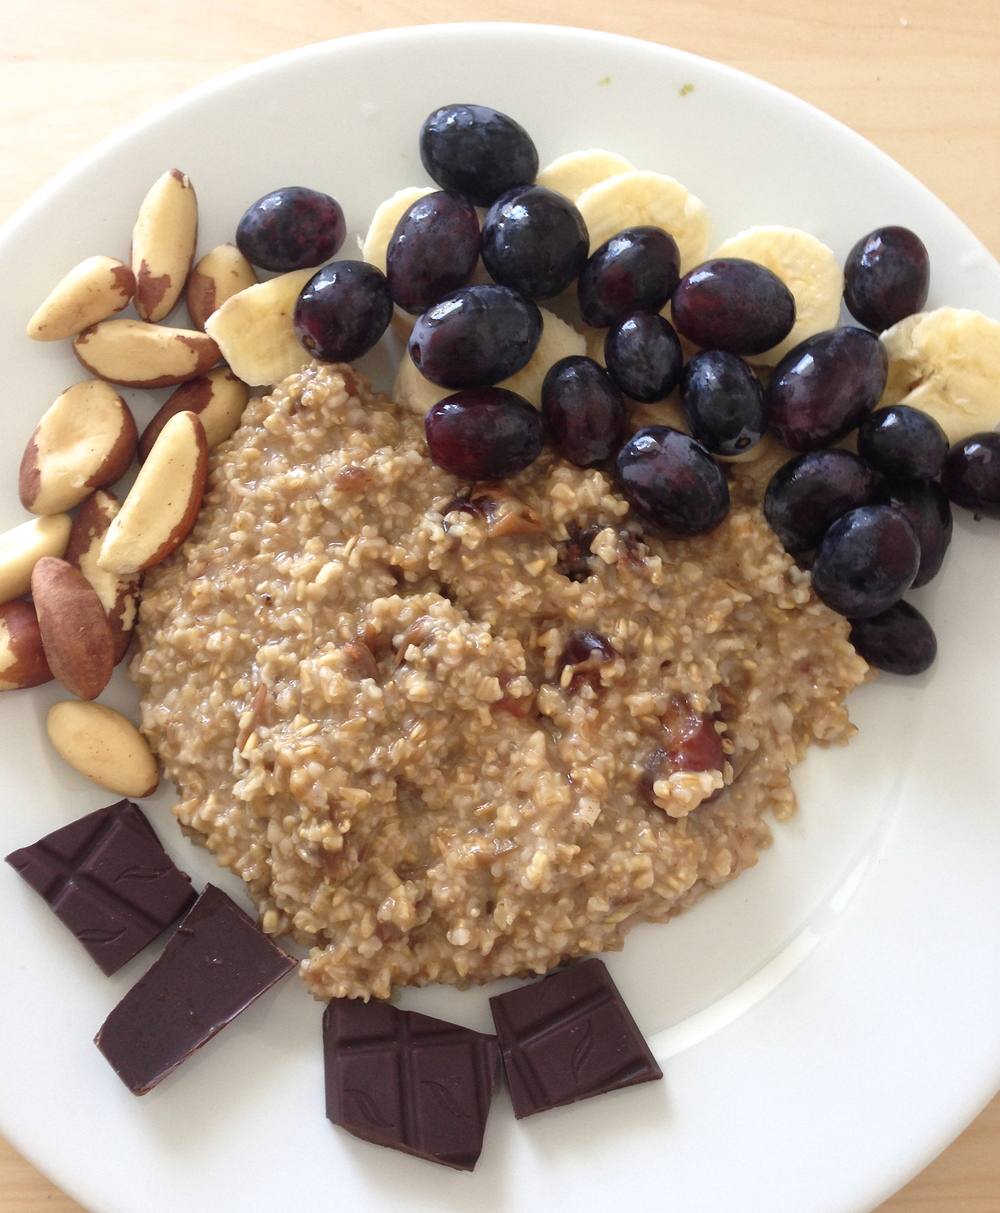 A healthy breakfast plate of steel-cut oatmeal (with dates cooked inside), 85% dark chocolate, grapes, Brazil nuts, and sliced banana.